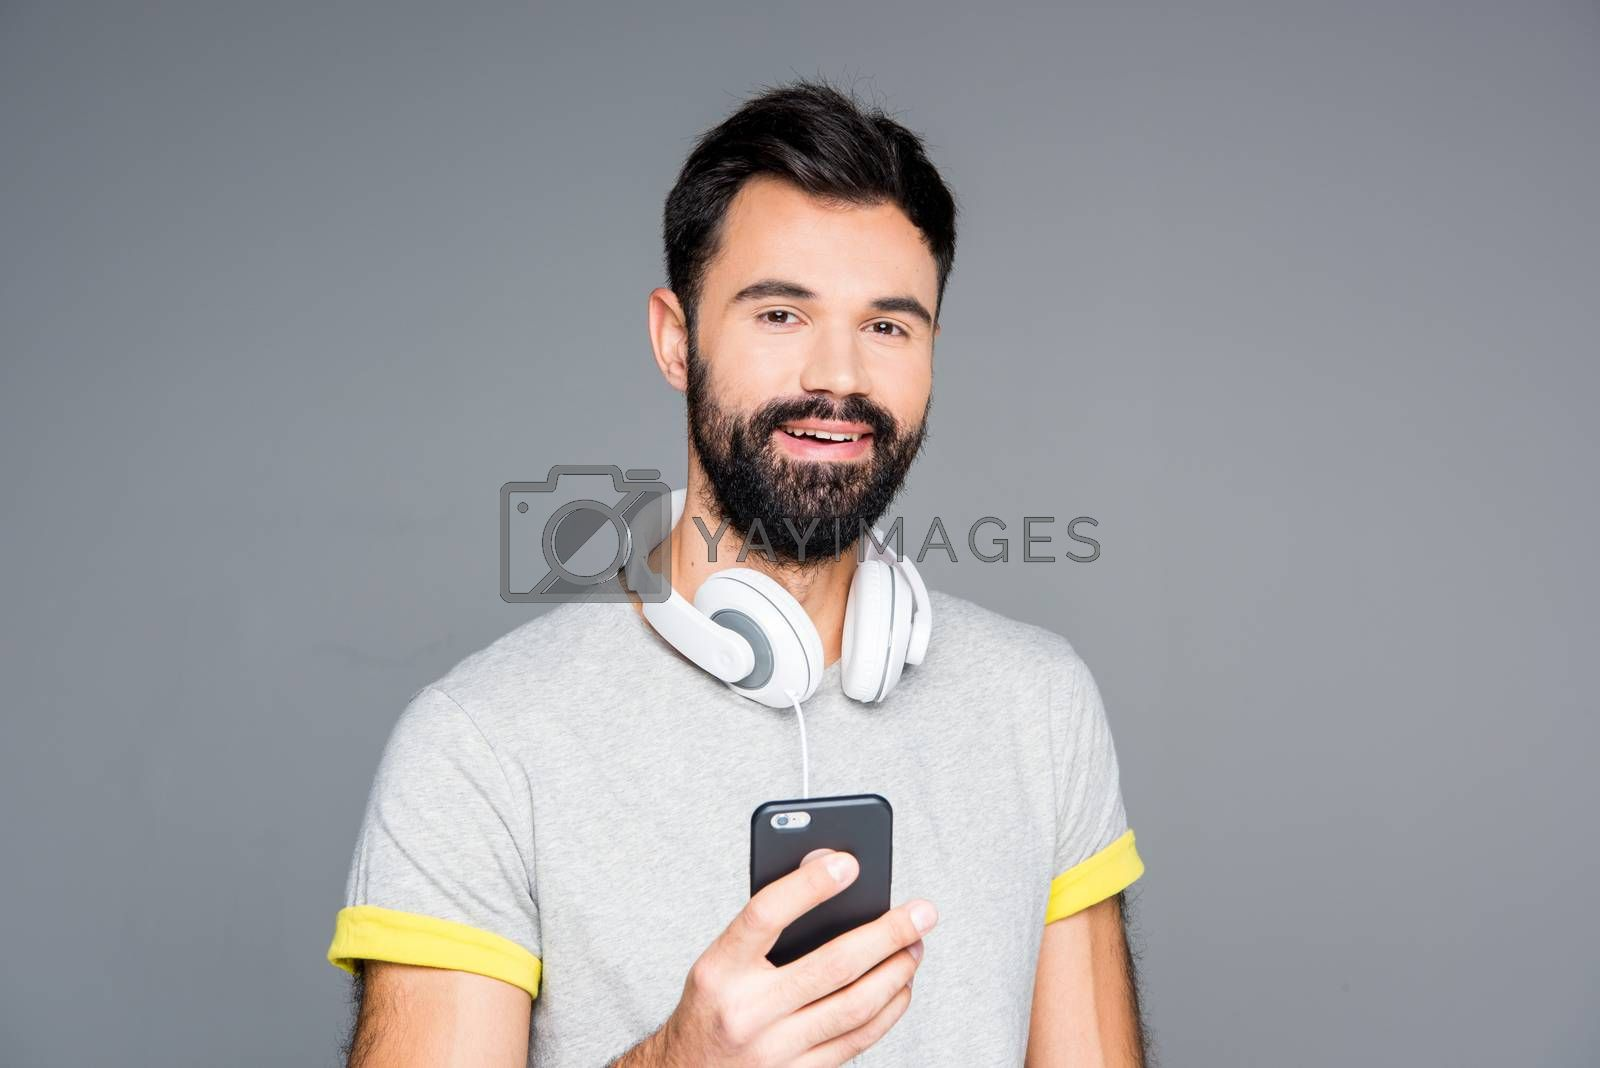 Smiling bearded man using smartphone and looking at camera on grey